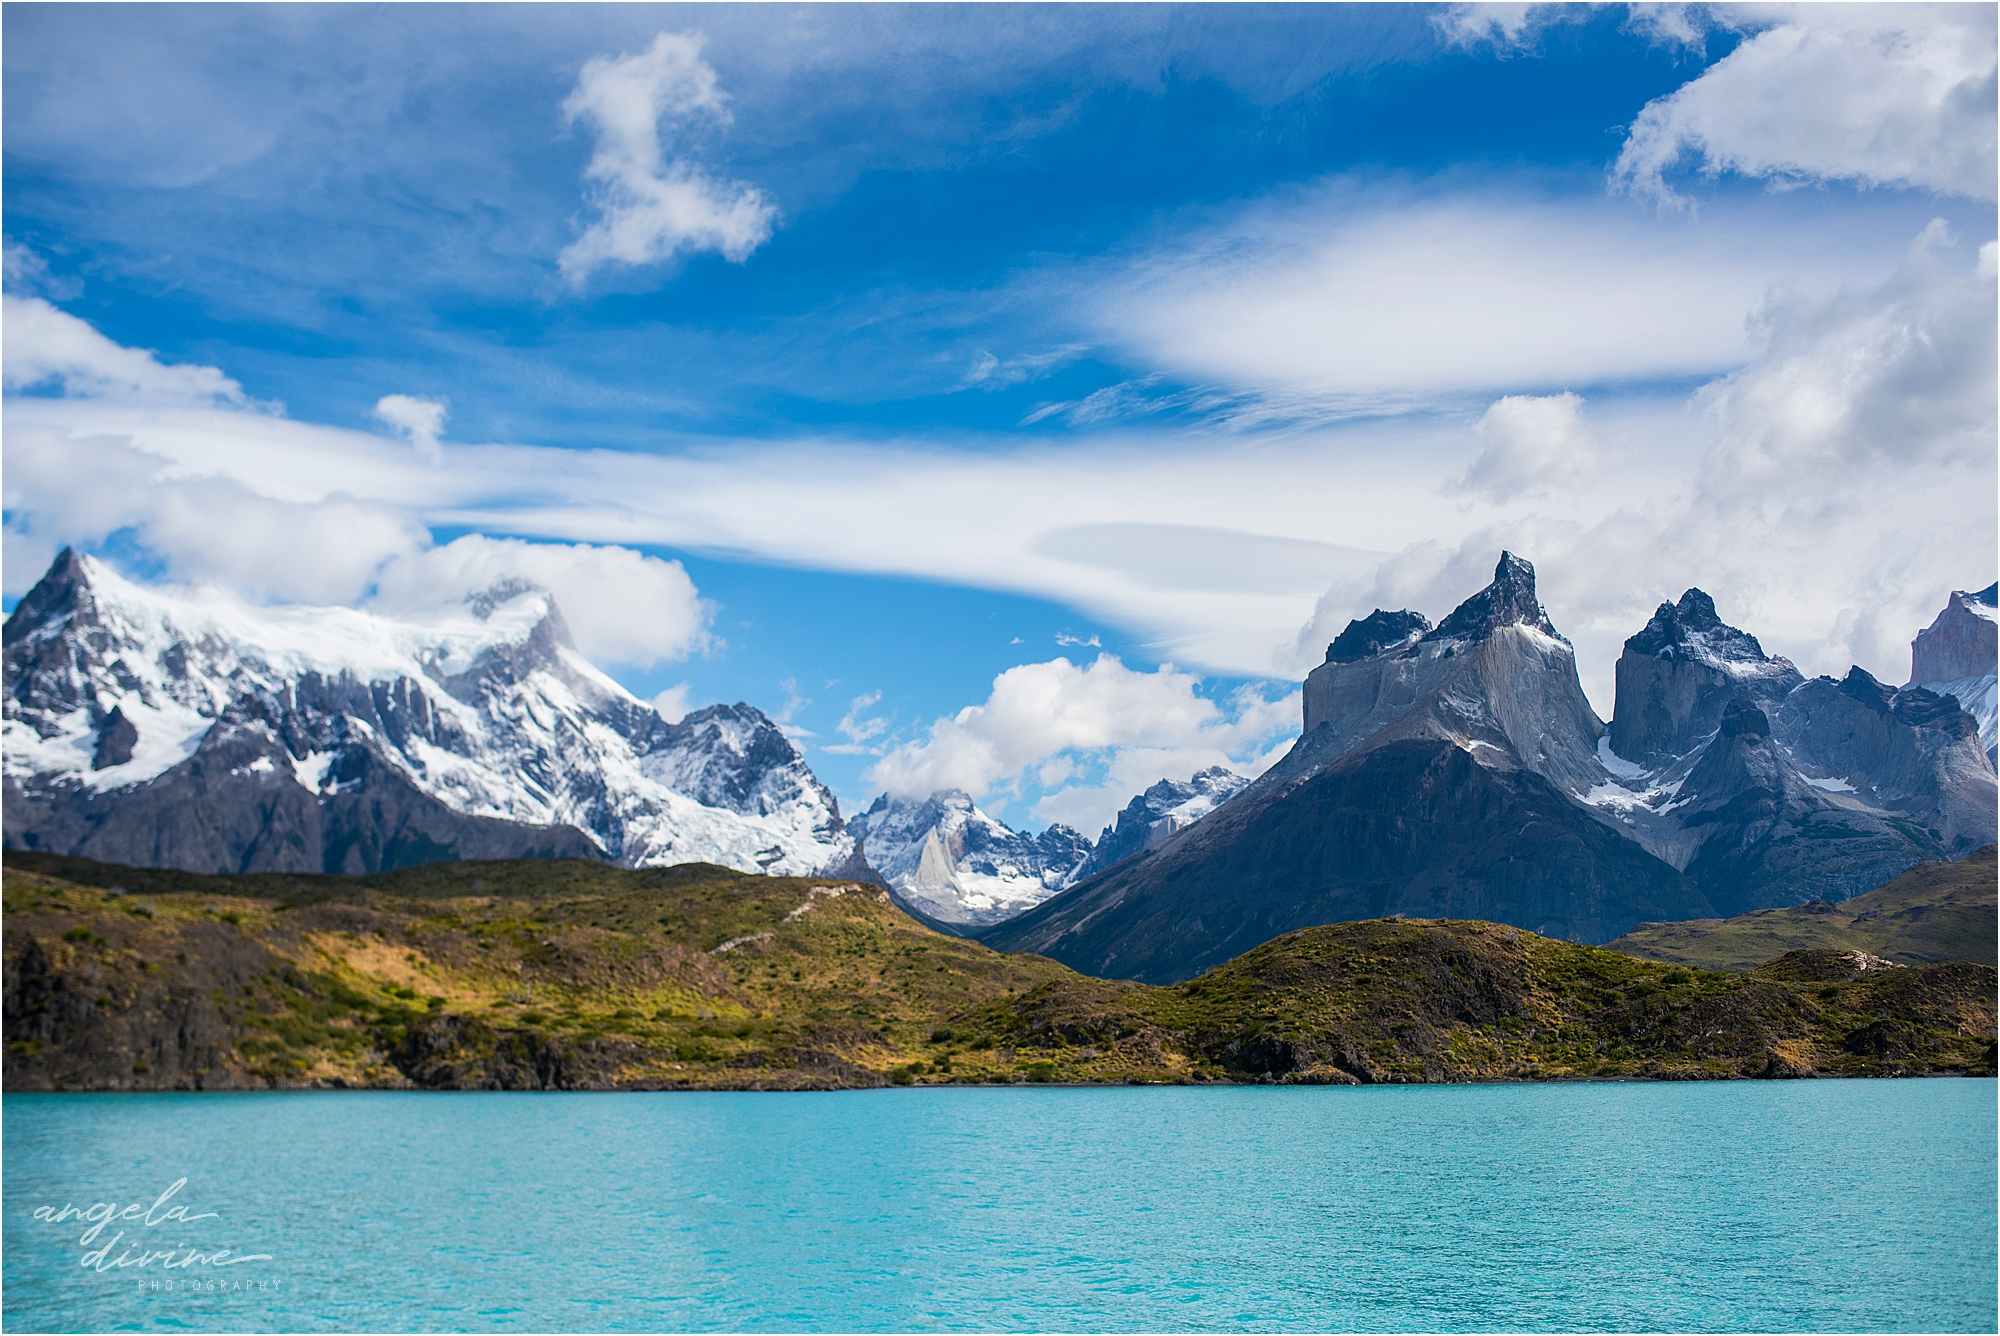 Circuito W Torres Del Paine Camping : How to visit torres del paine things to consider when planning a